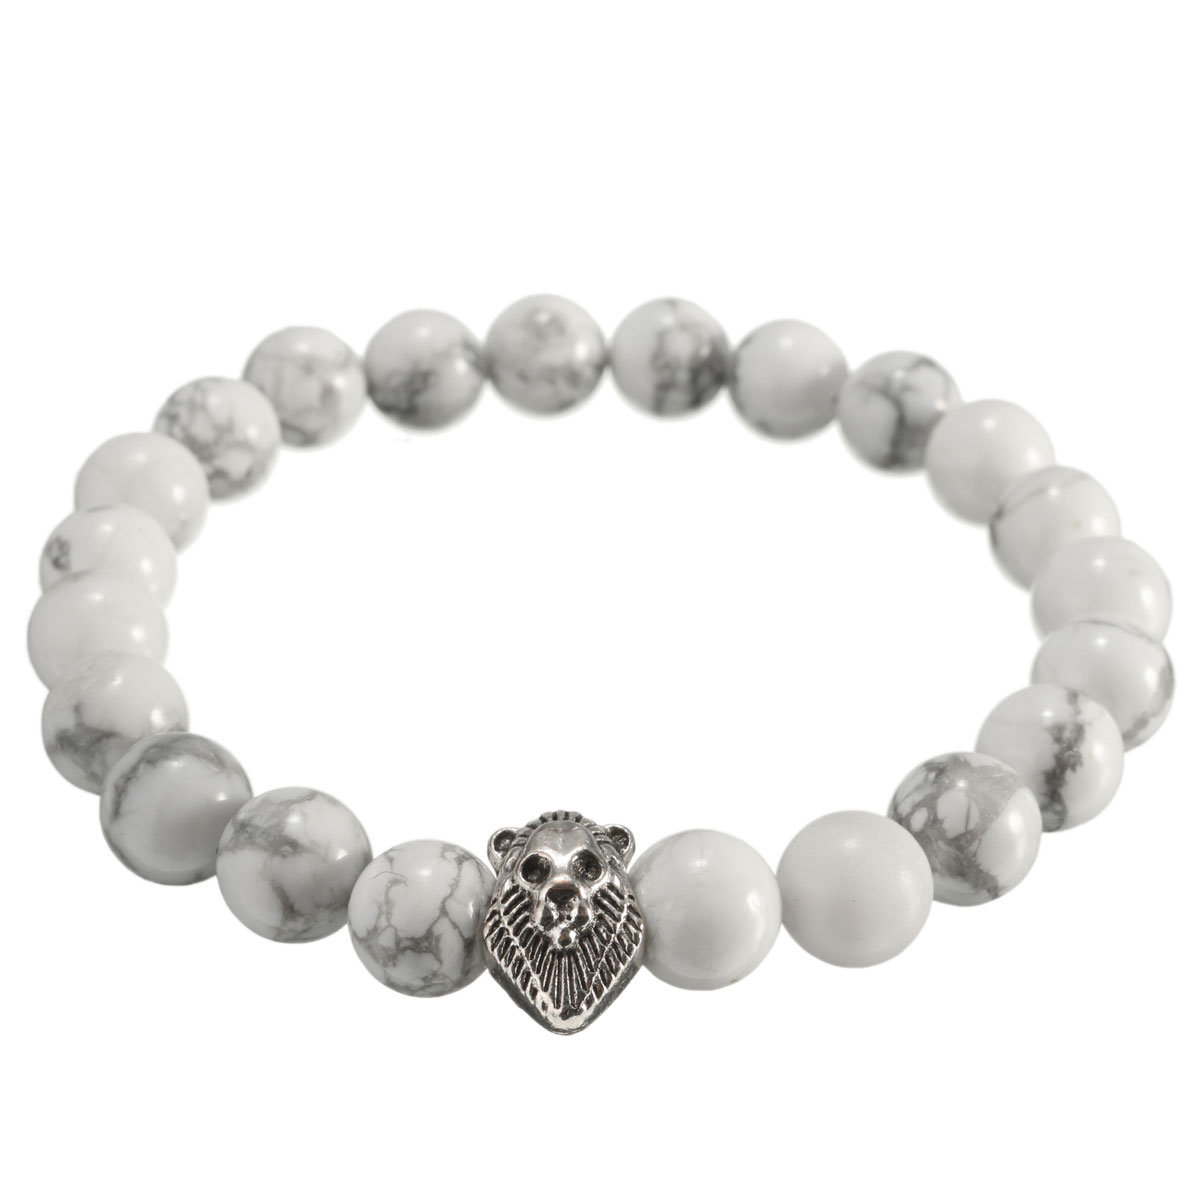 Agate Lion Head Beaded Stretch Bracelet